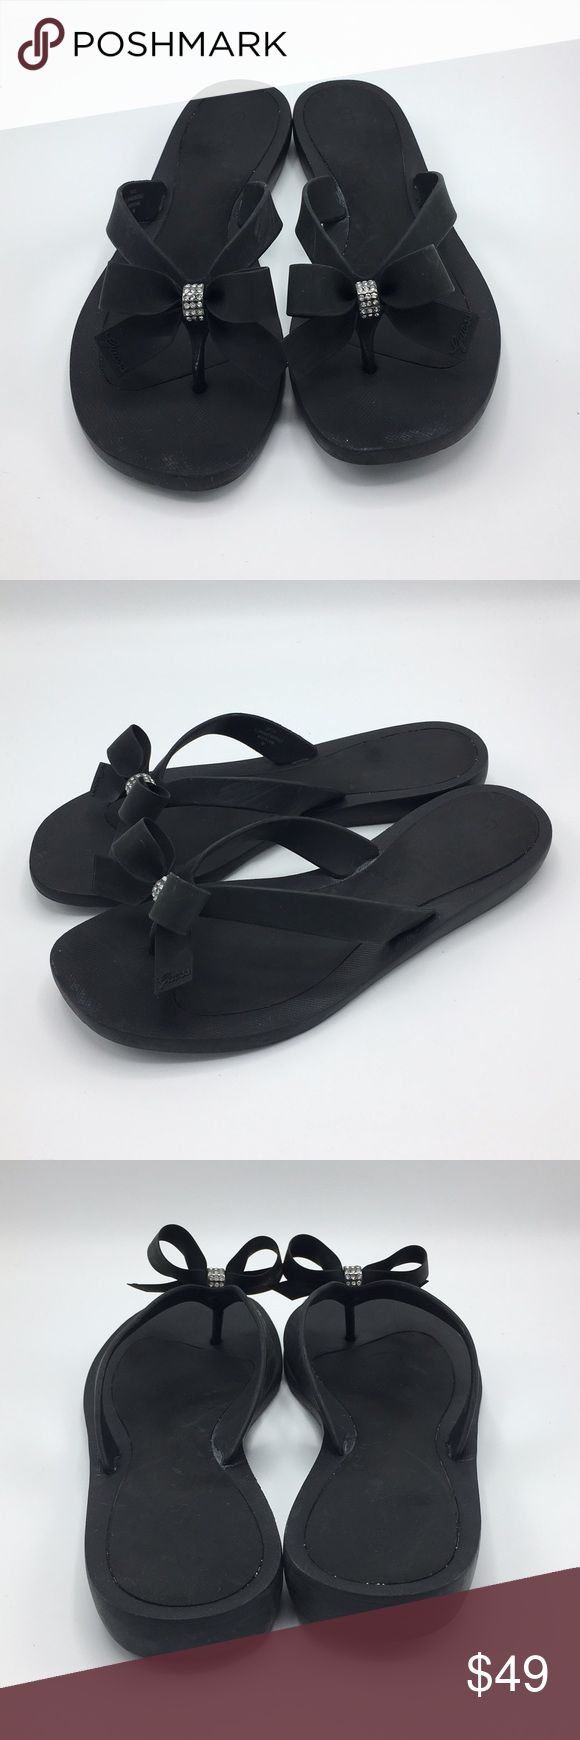 Guess Bow Flip Flops Can fit anyone from a 9.5-10. Gently used, no trades, feel free to ask questions! :) Guess Shoes Sandals